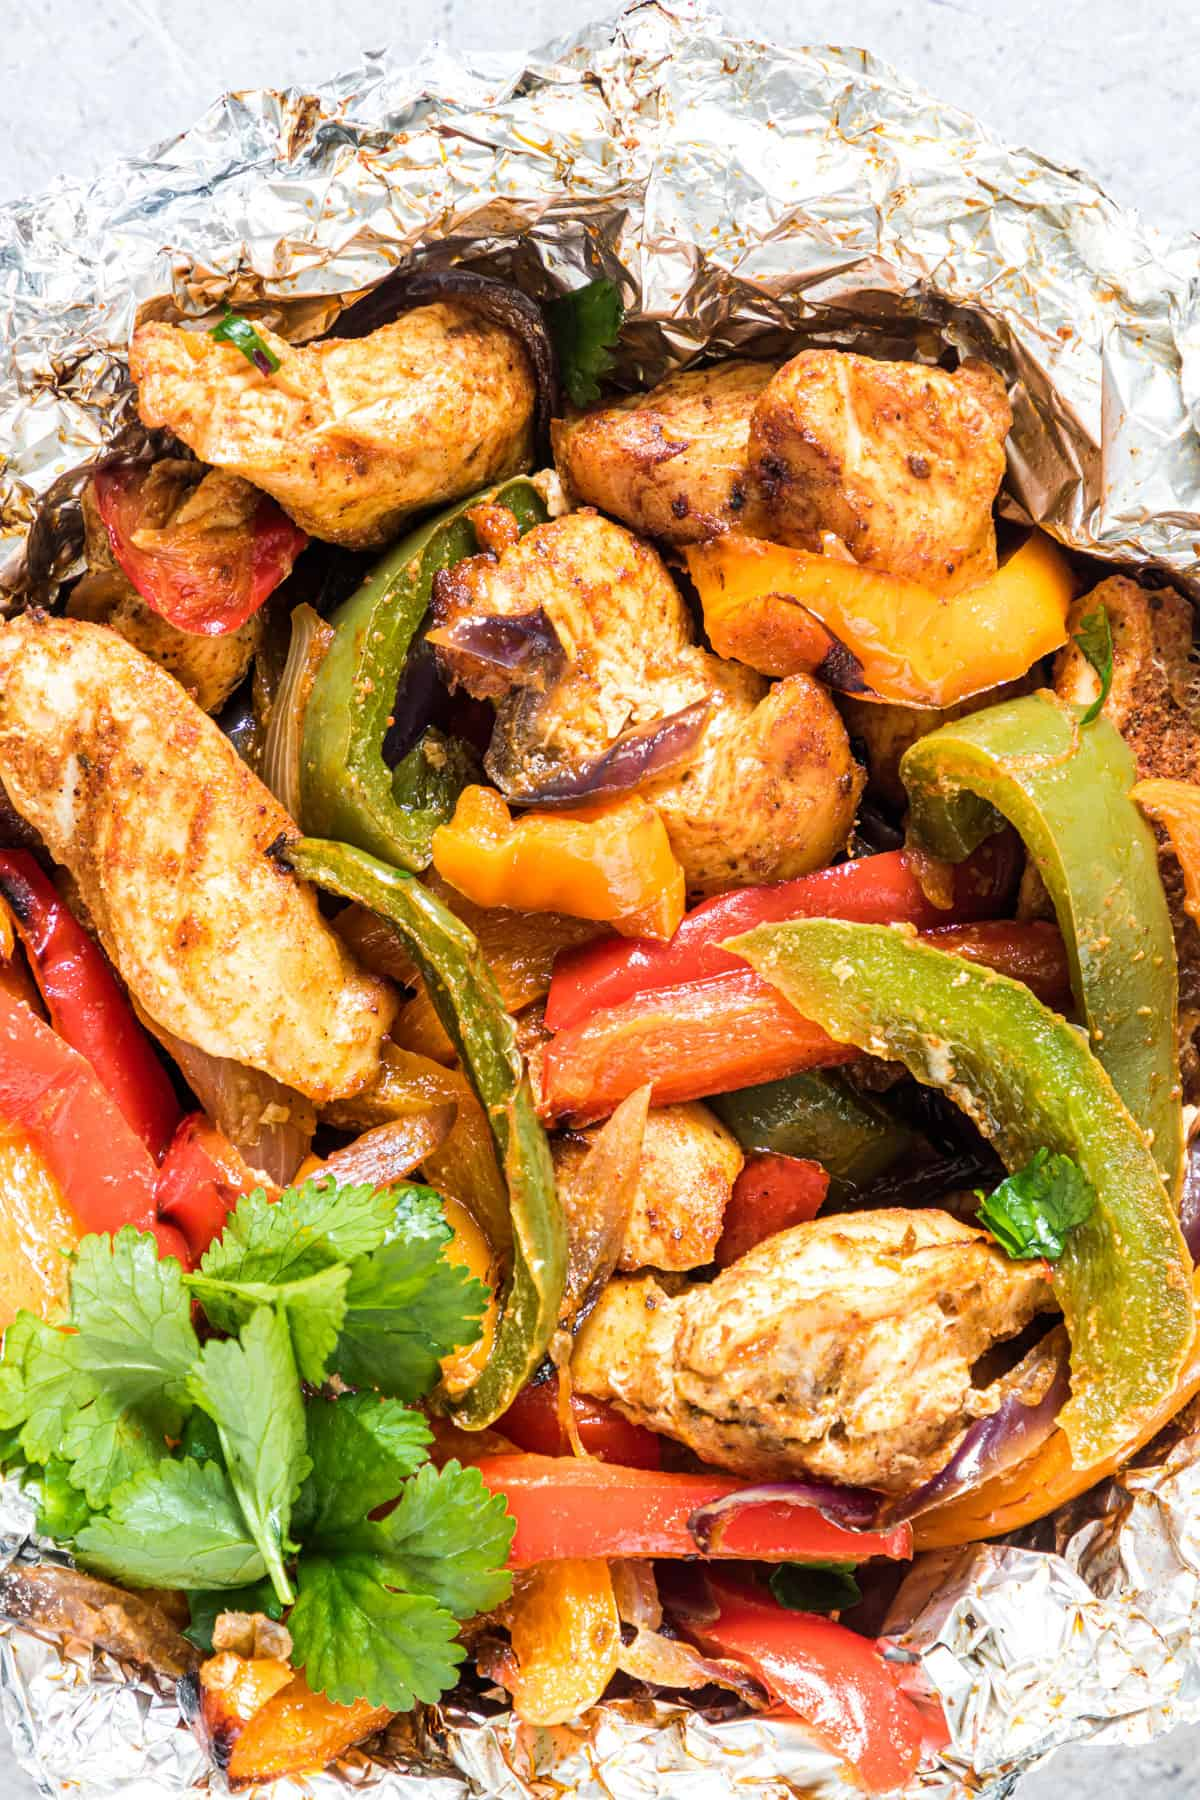 Close up of a cooked chicken fajita foil packet garnished with herbs